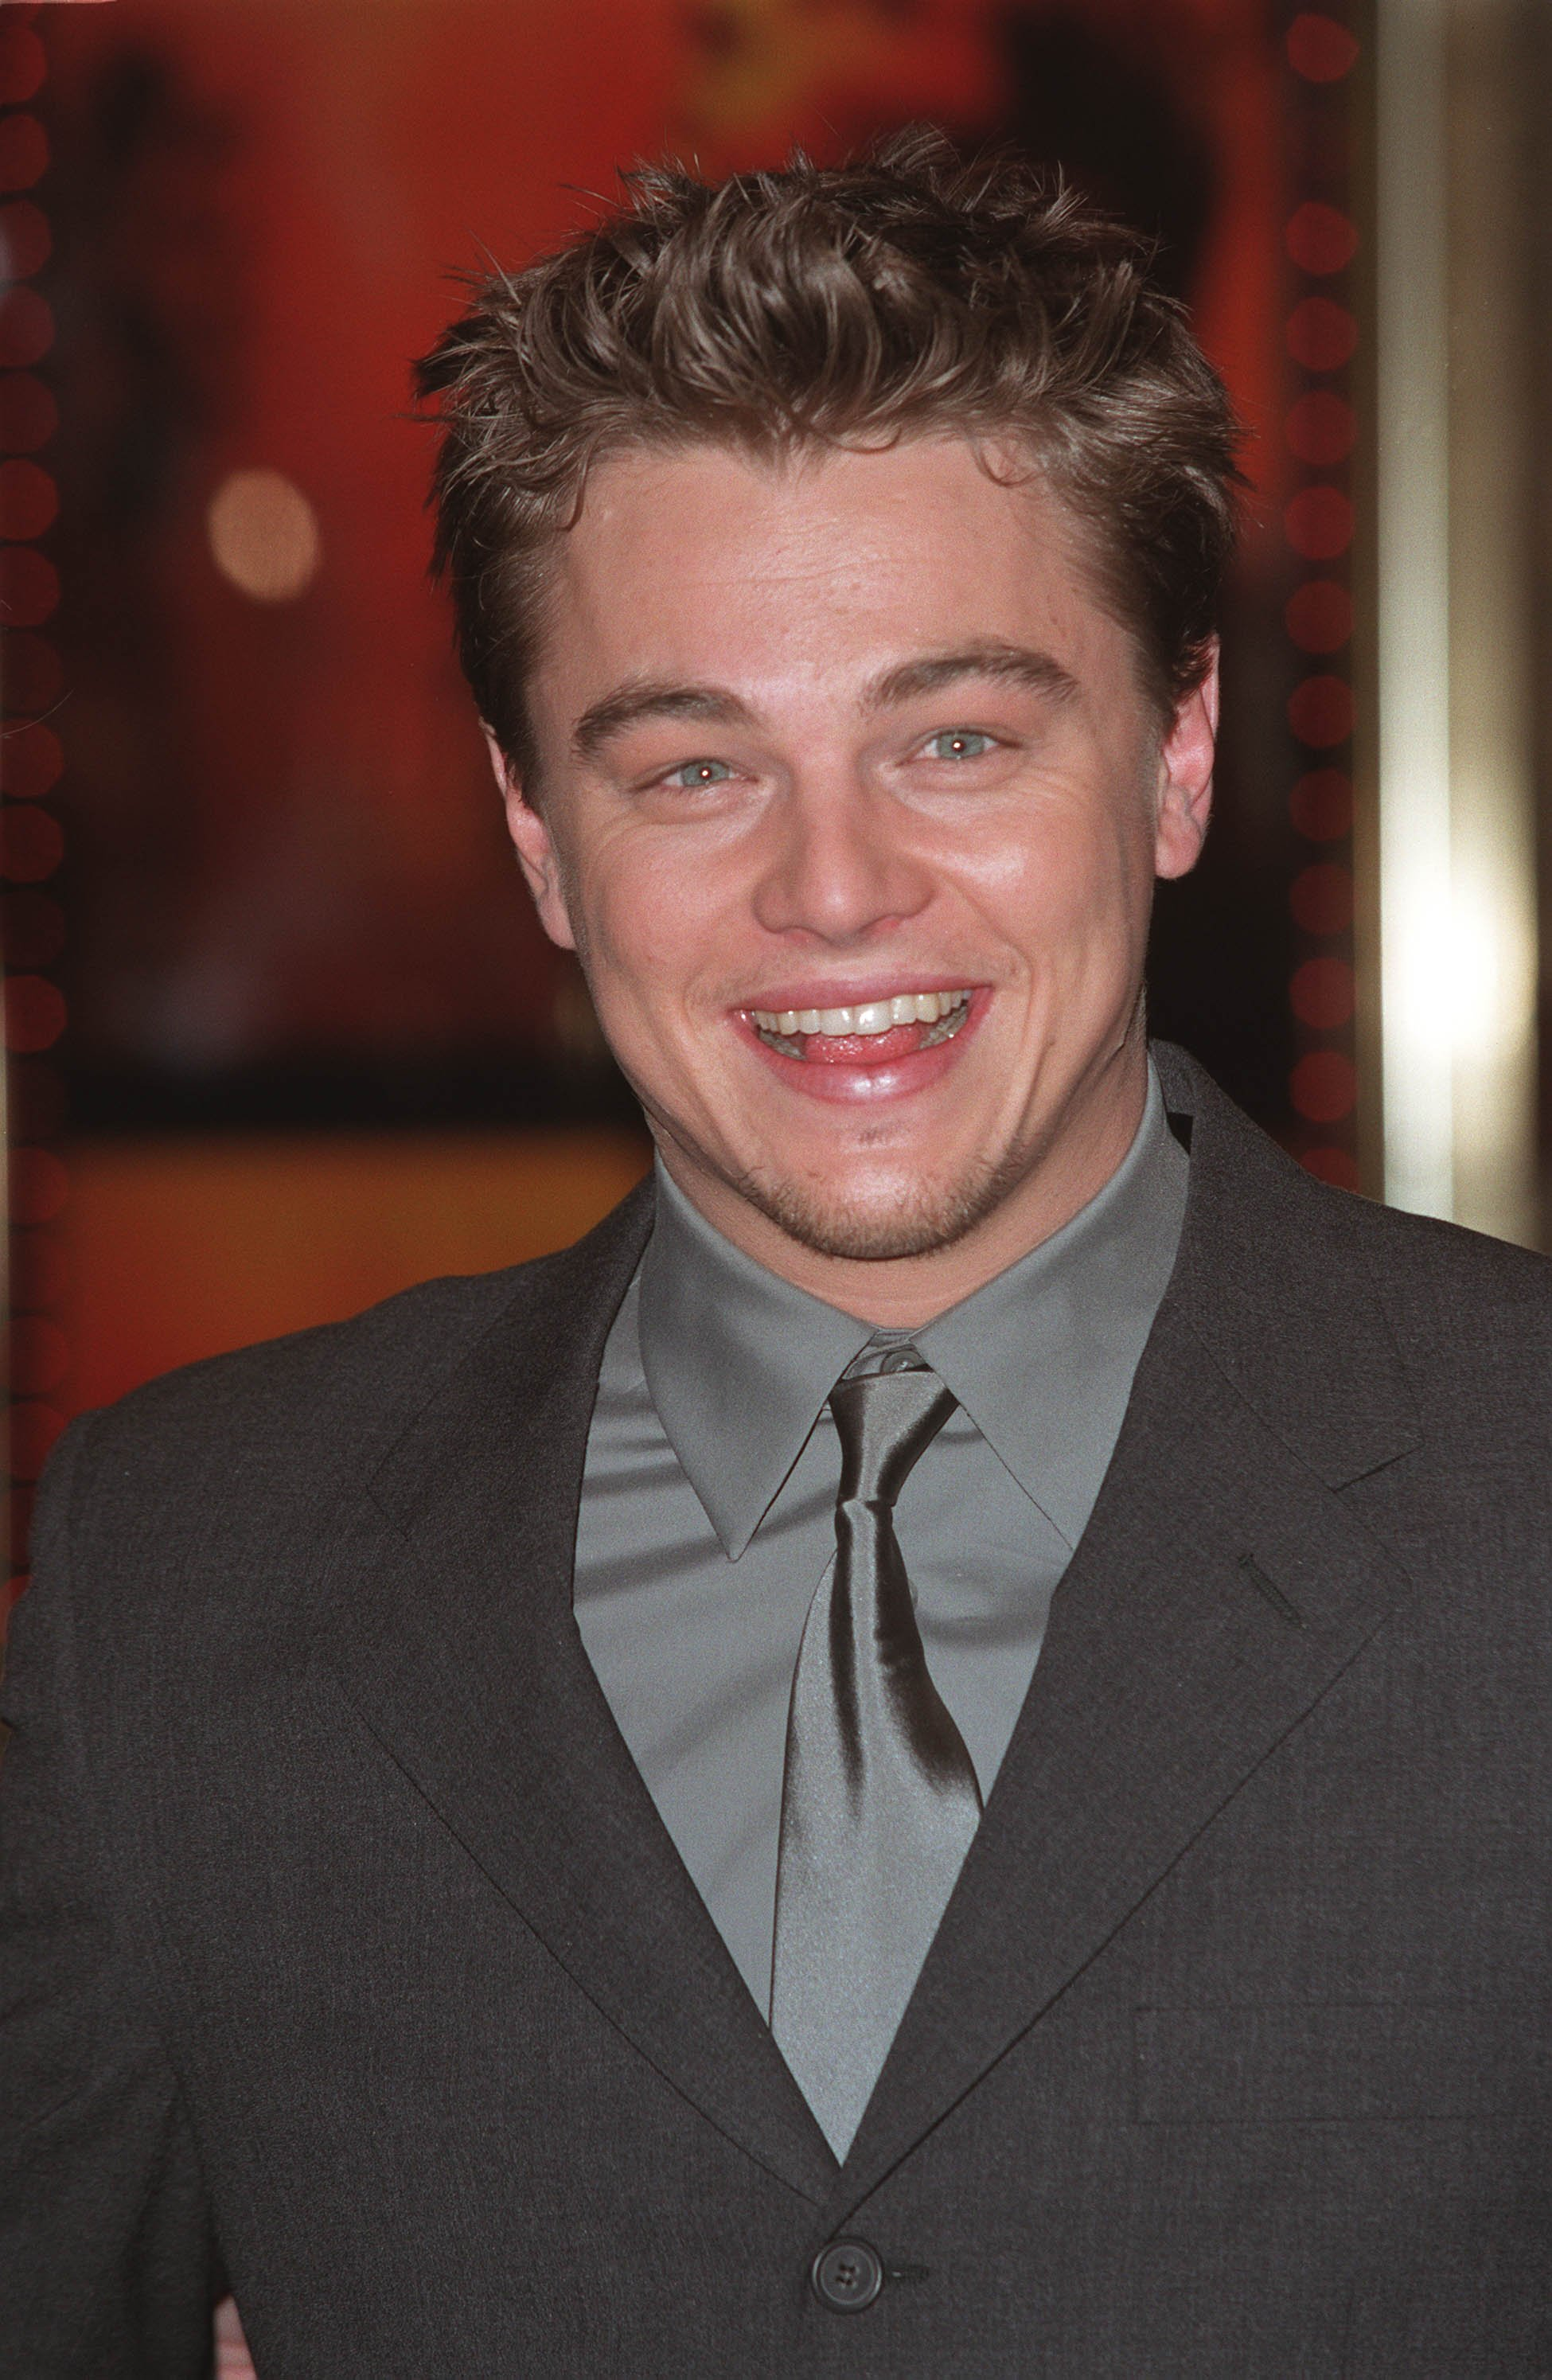 Image Source: Getty Images| Leonardo DiCaprio